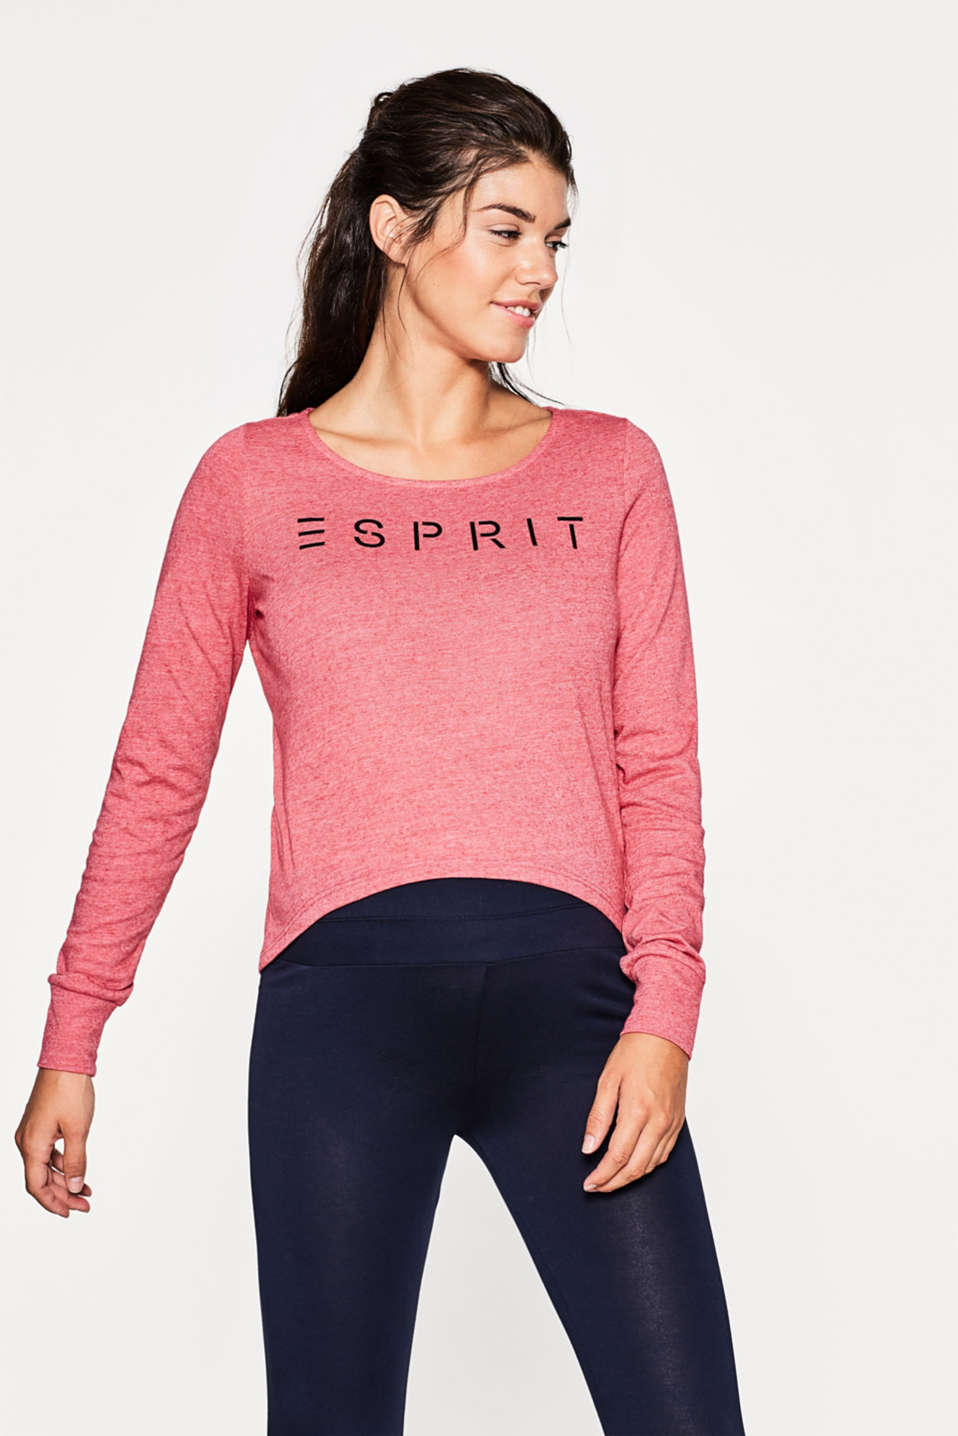 Esprit - Active long sleeve top with a logo print